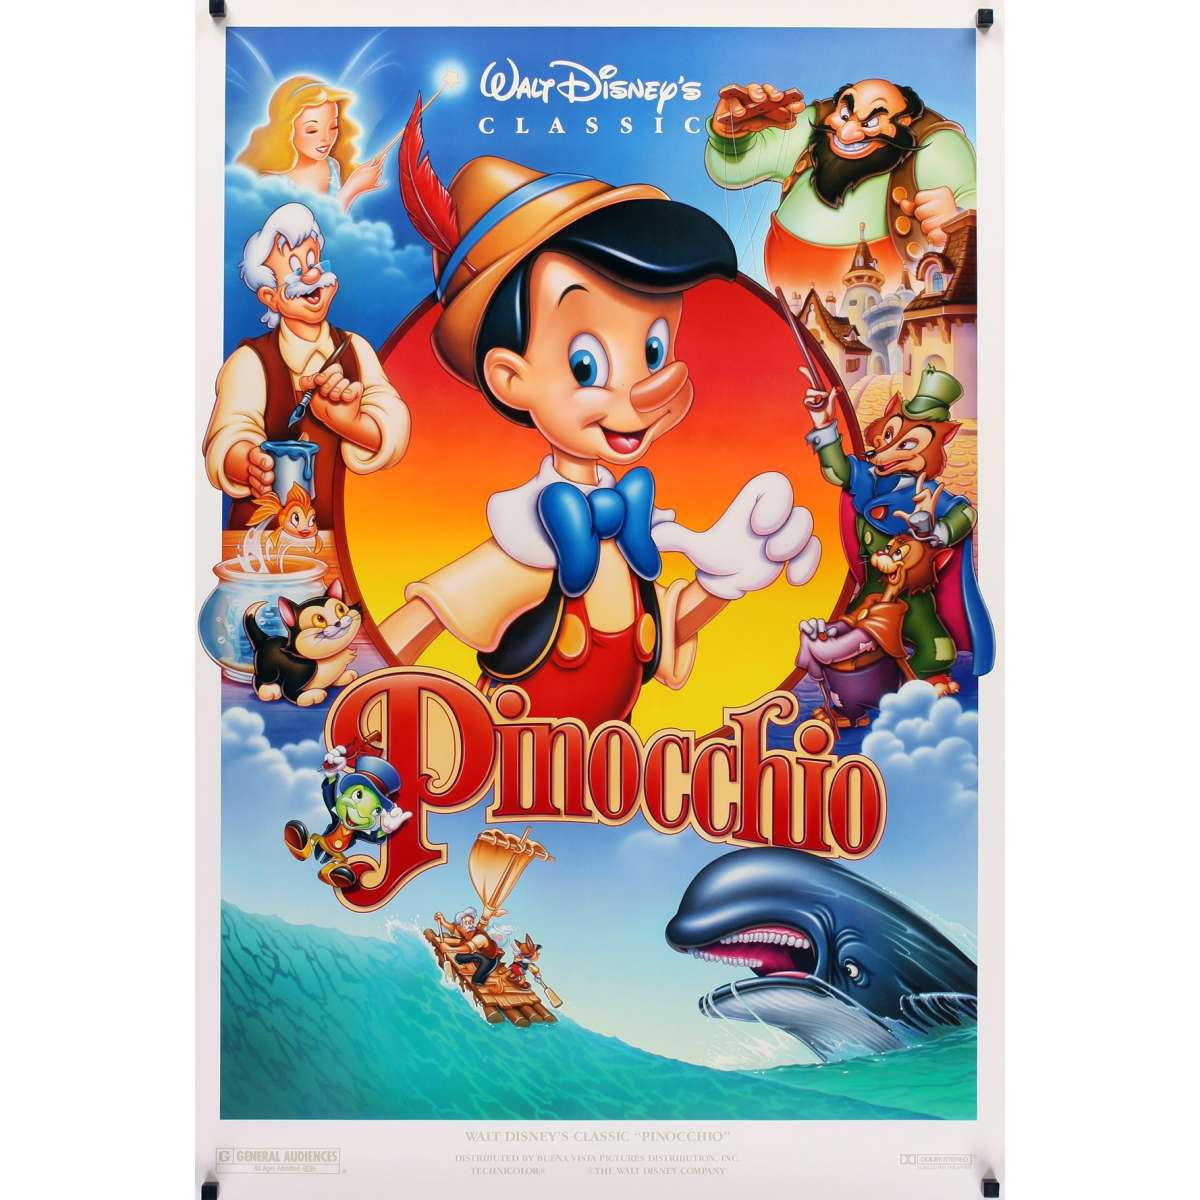 PINOCCHIO DS Movie Poster R92 Disney Classic Fantasy Cartoon About A Wooden Boy Who Wants To Be